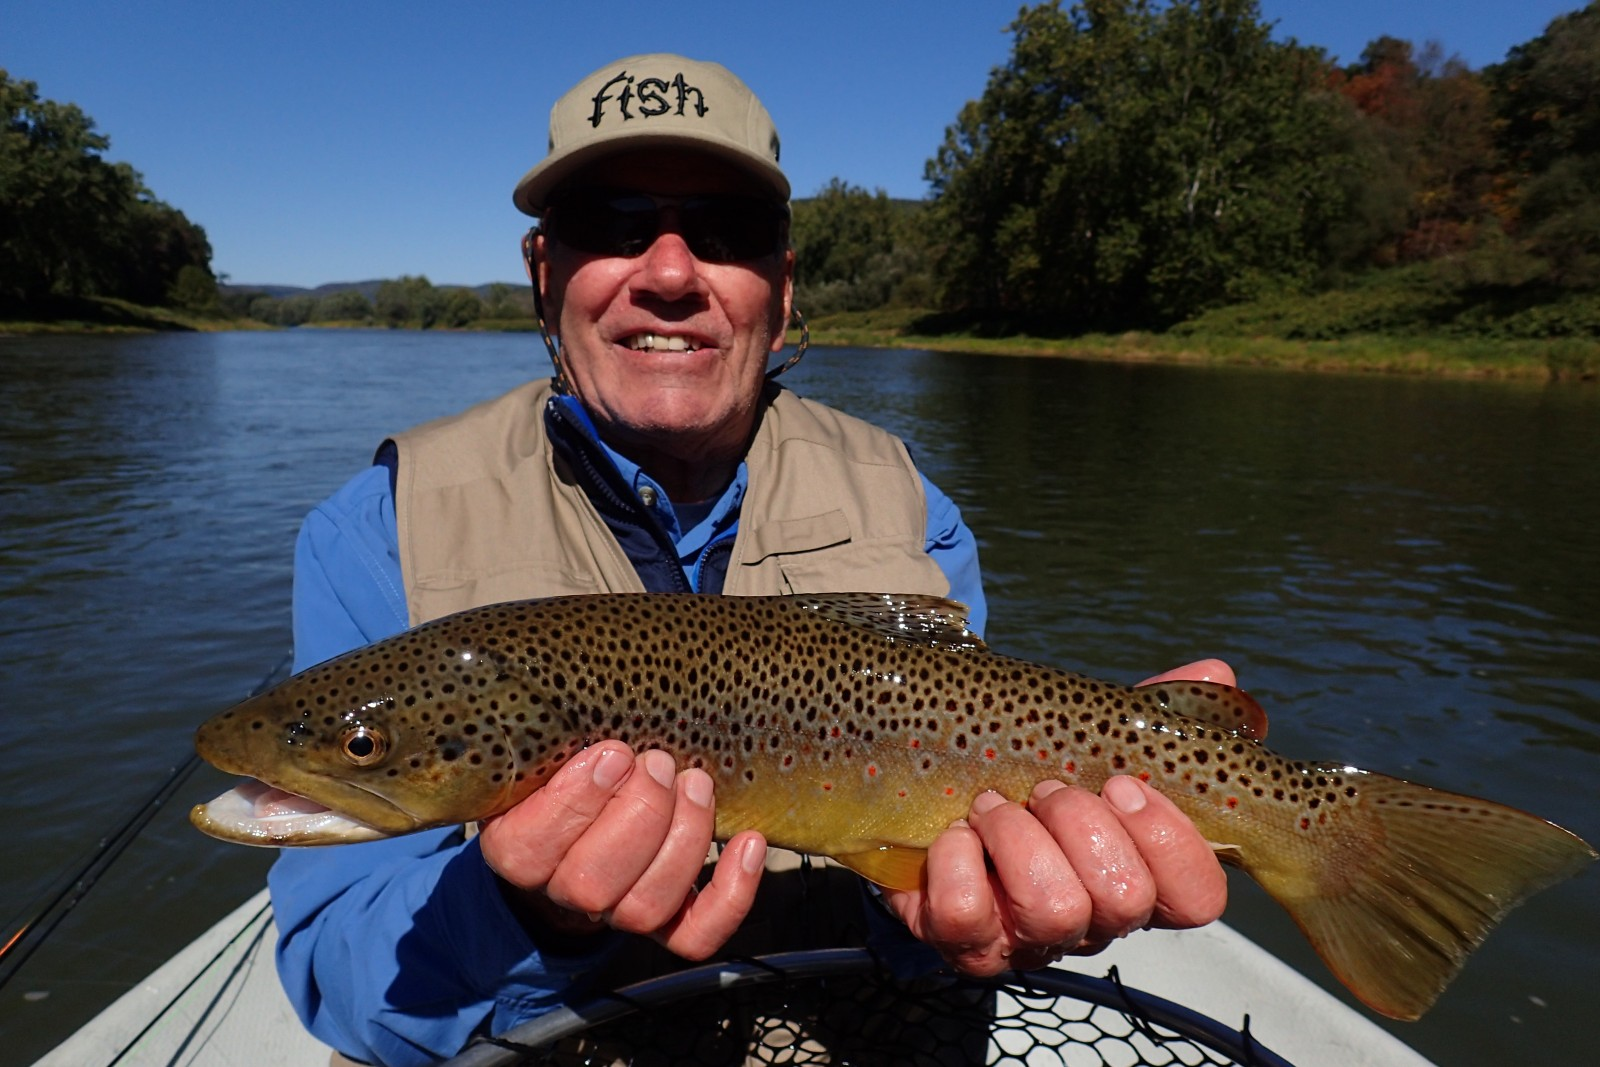 guided fly fishing float trips on the delaware river for big trout with jesse filingo of filingo fly fishing